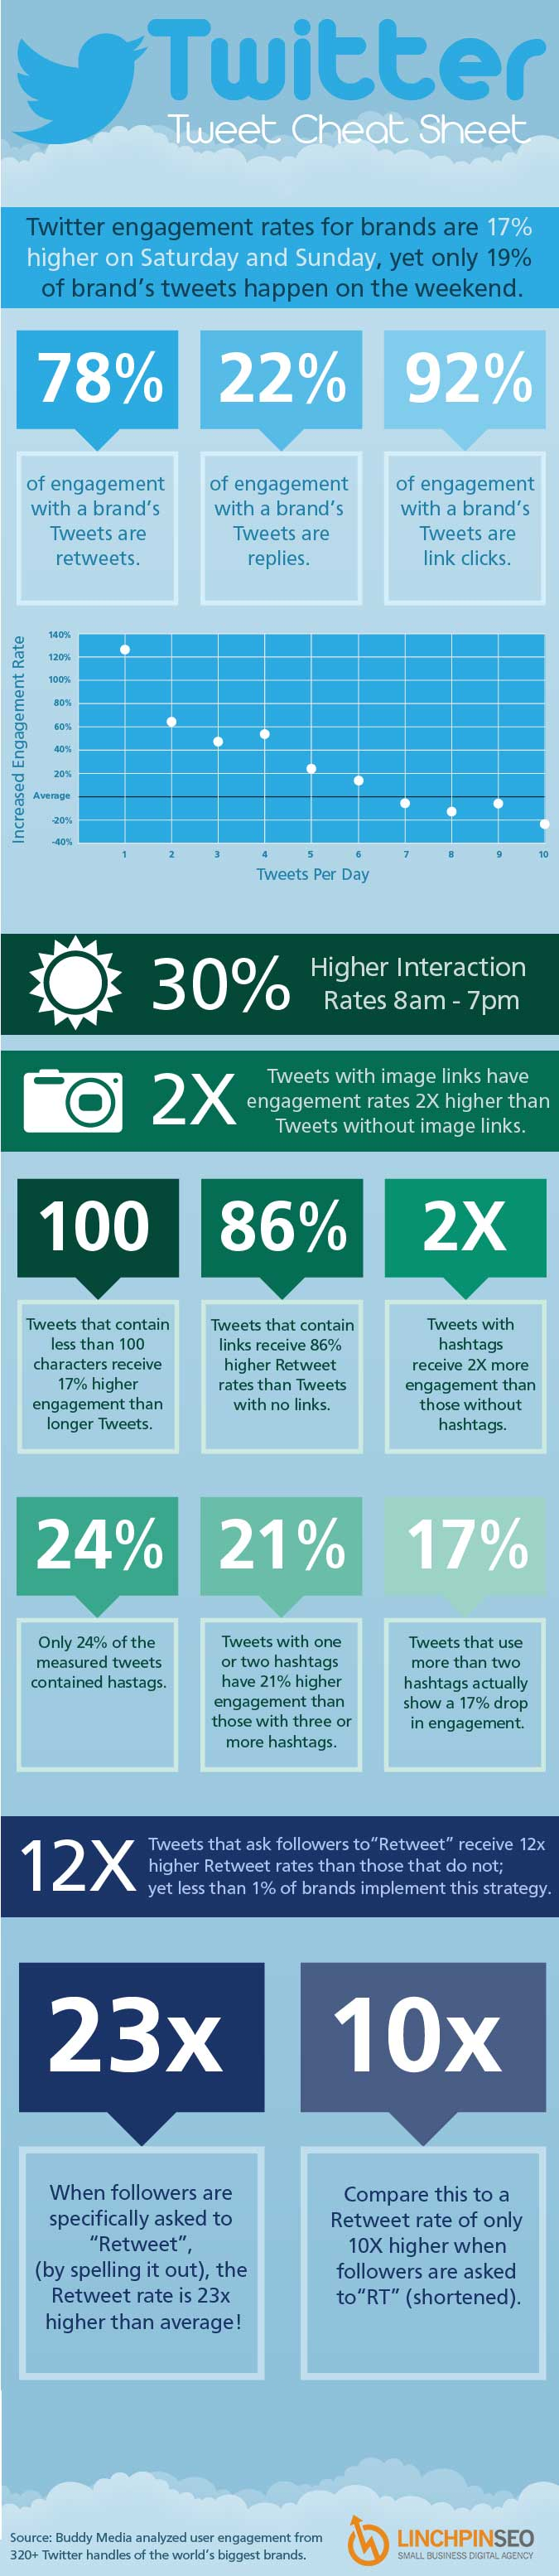 Why You Must Tweet More Images and Other Awesome Twitter Facts [Infographic] by Linchpin SEO https://sociallysorted.com.au/tweet-more-images-twitter-facts-infographic/